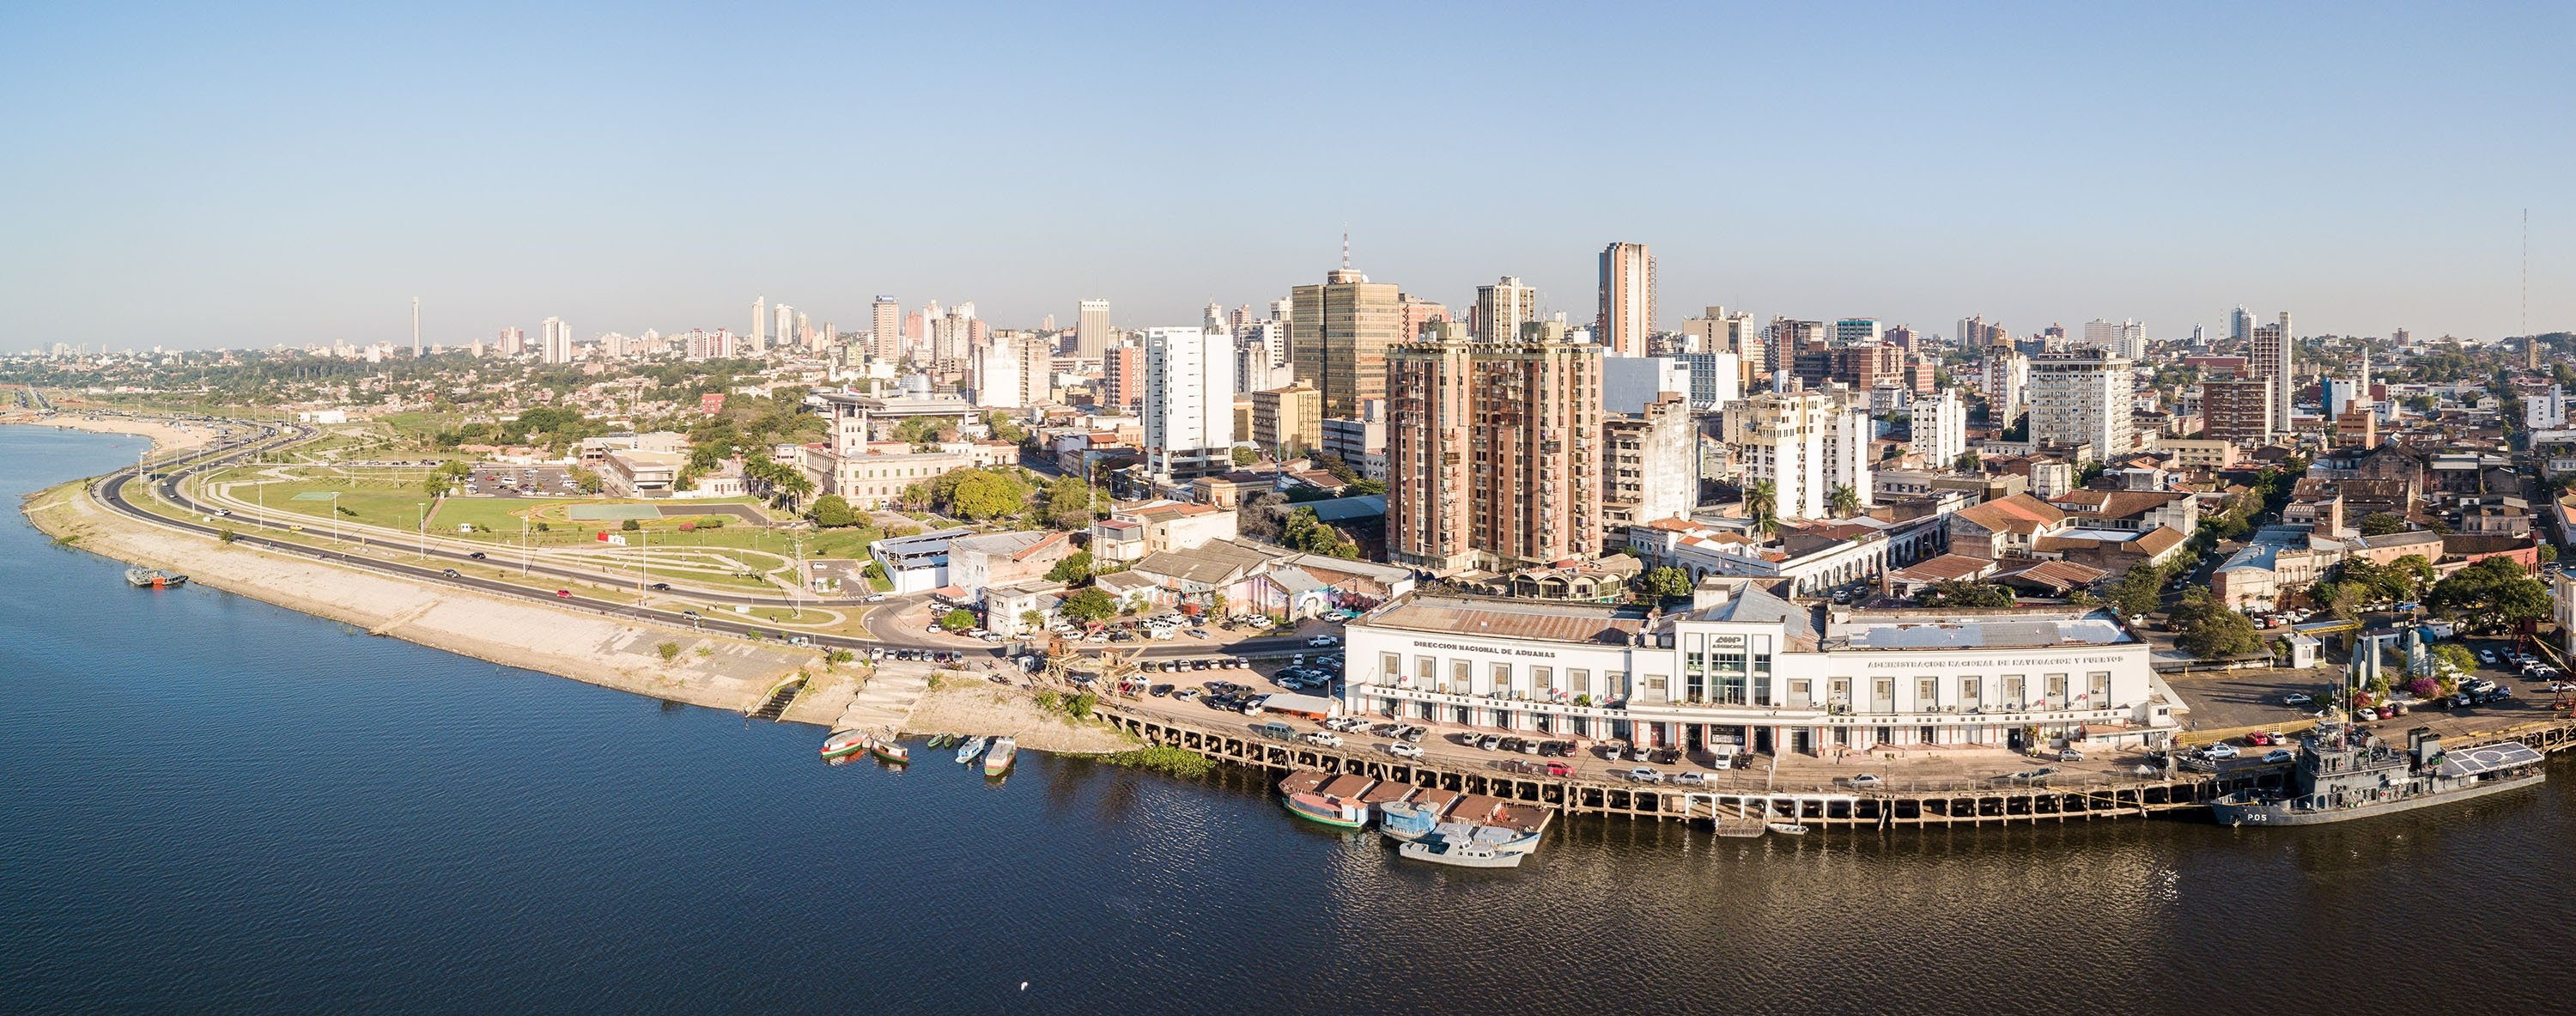 A panoramic view of skyscrapers in the Latin American capital of Ciudad de Asuncion, Paraguay, and the embankment of Paraguay river as seen in an aerial drone photo, July 13, 2018. (Shutterstock Photo)